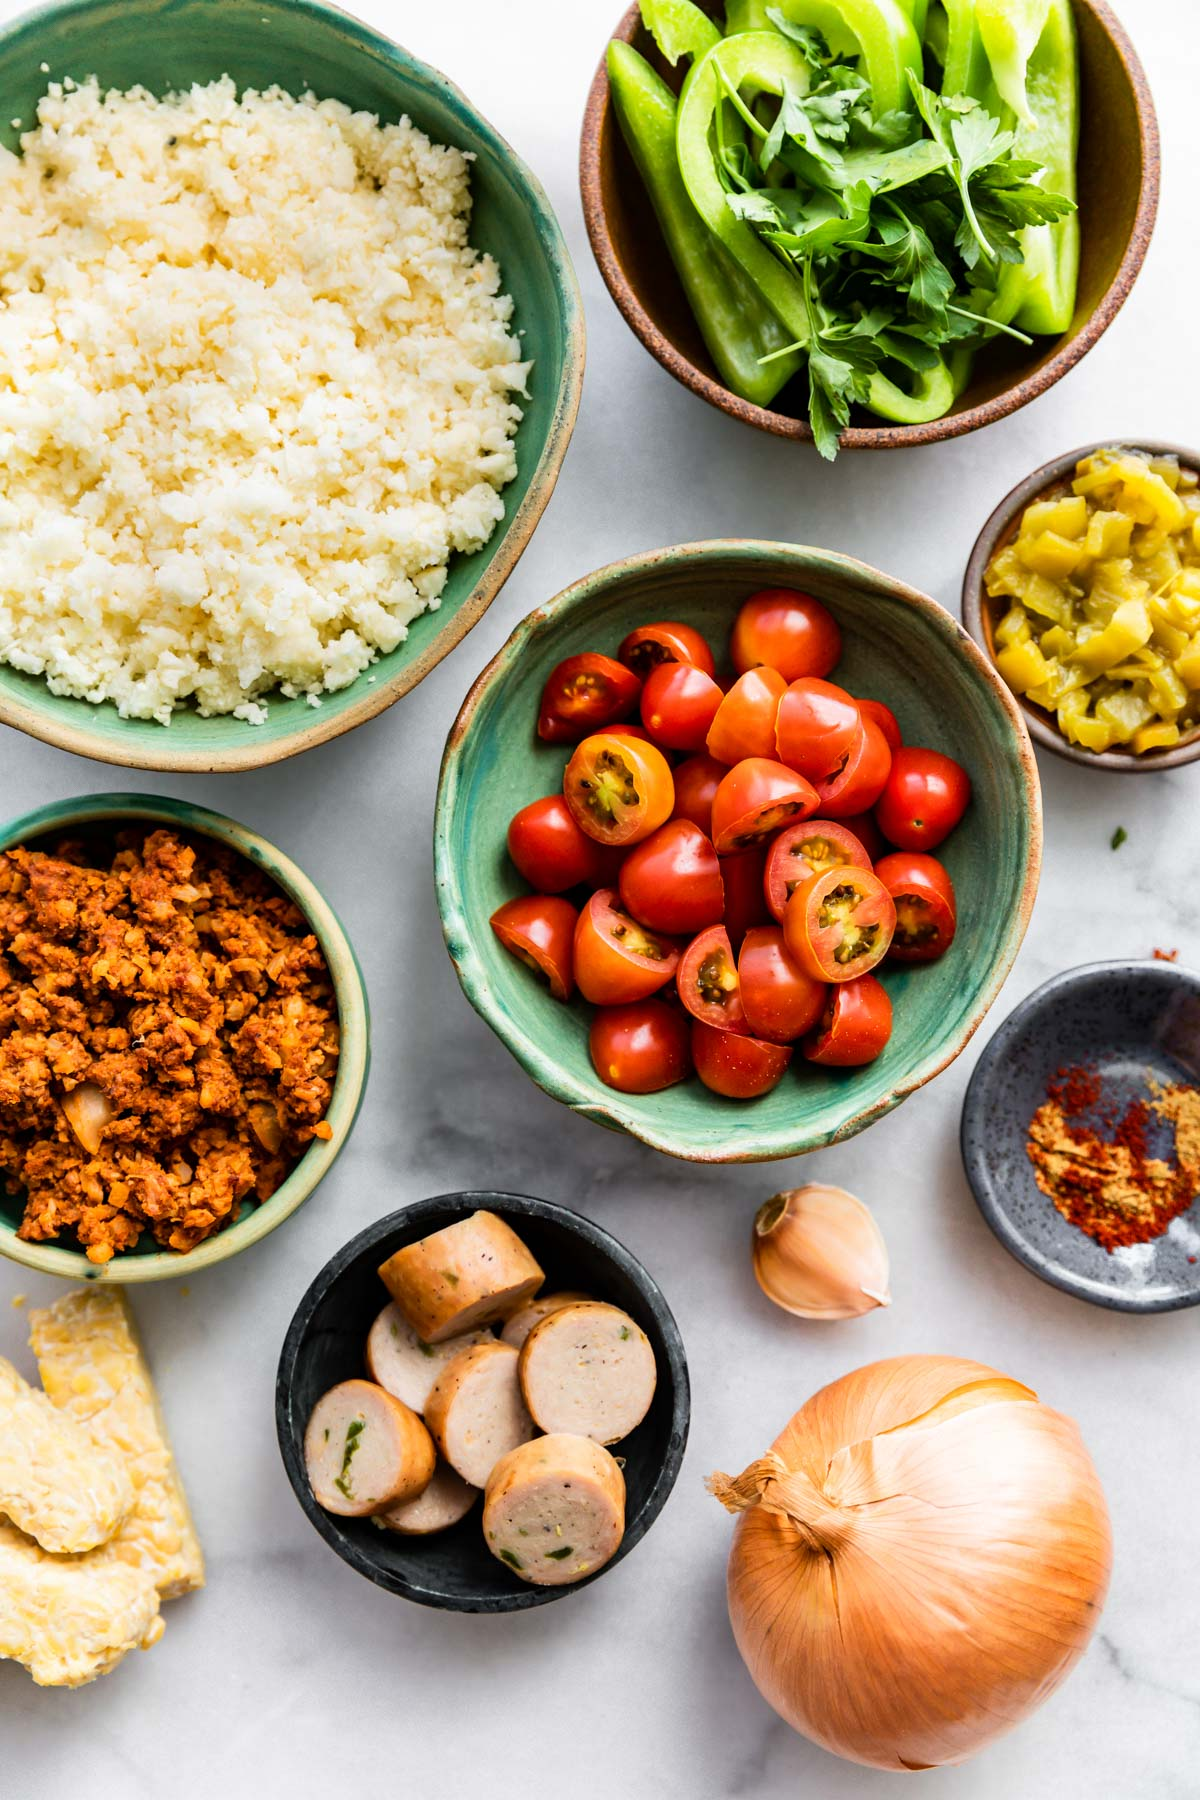 small bowls of ingredients to make Mexican cauliflower rice recipe